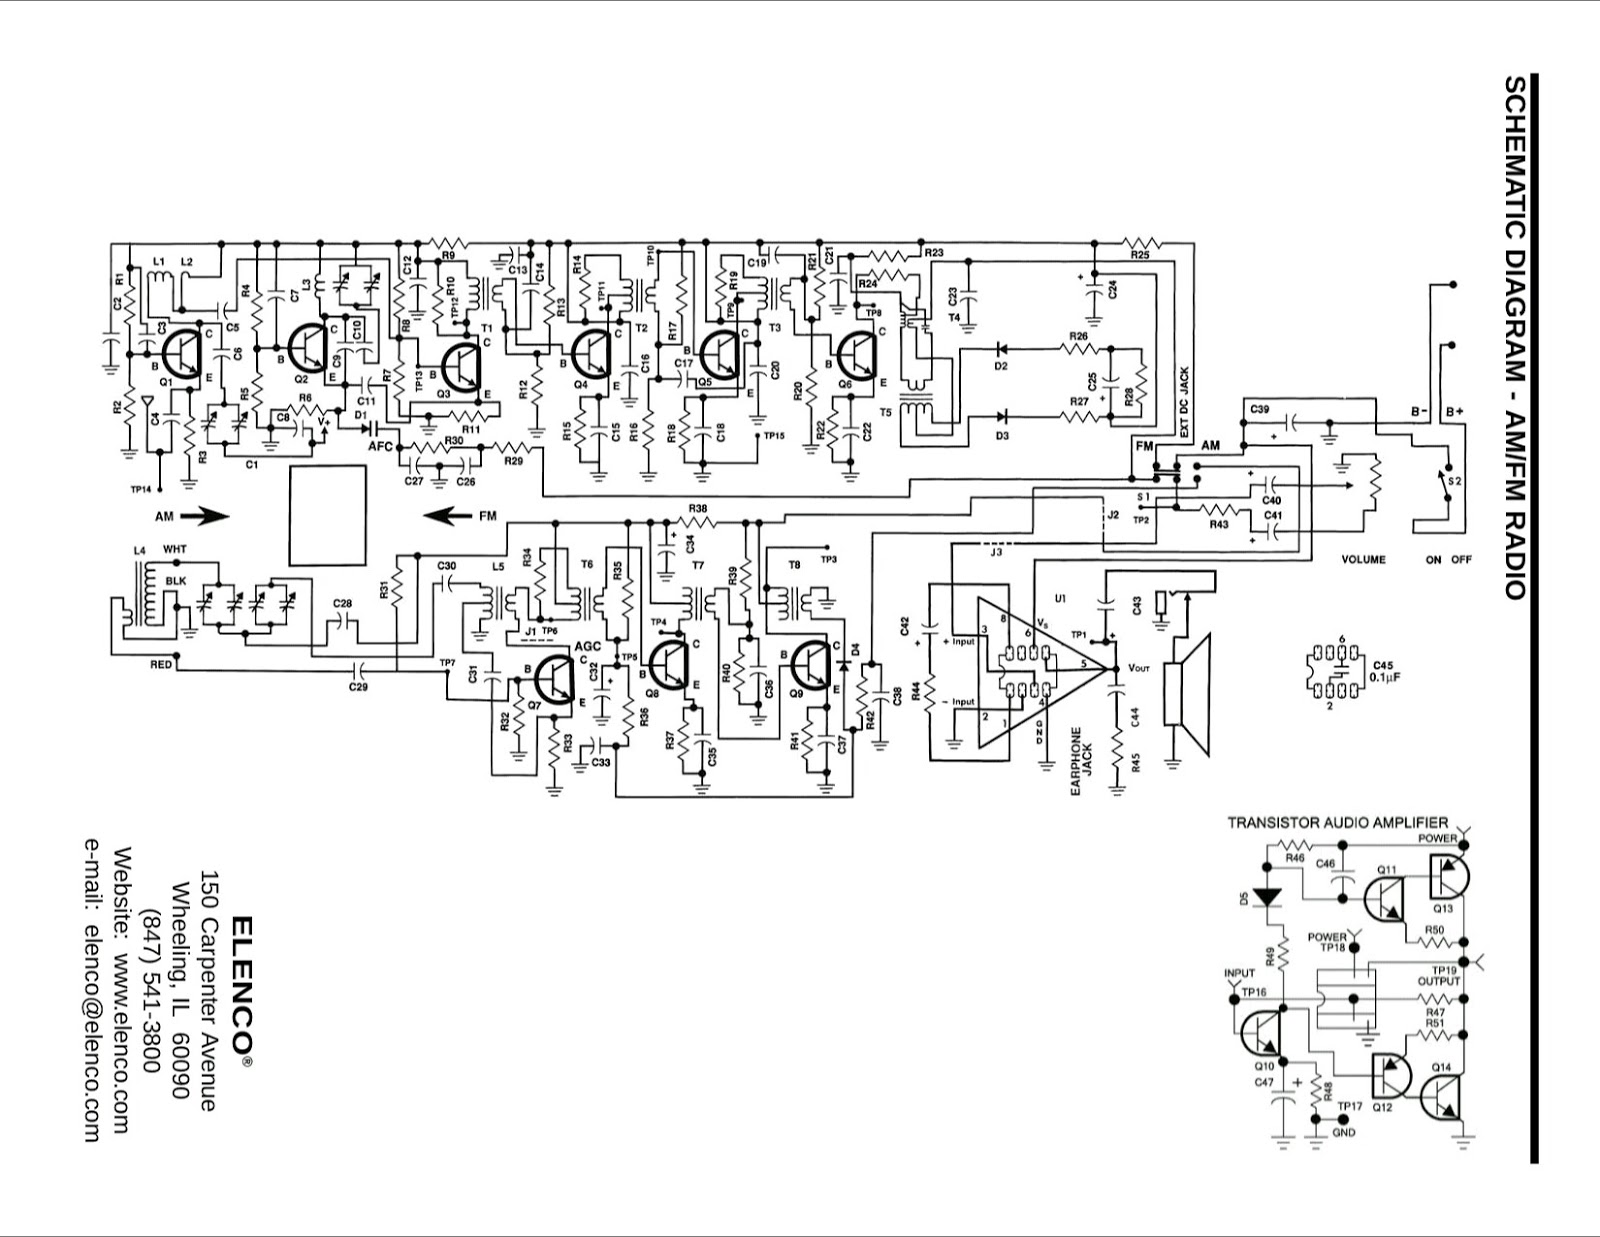 small resolution of simple fm receiver circuit diagram